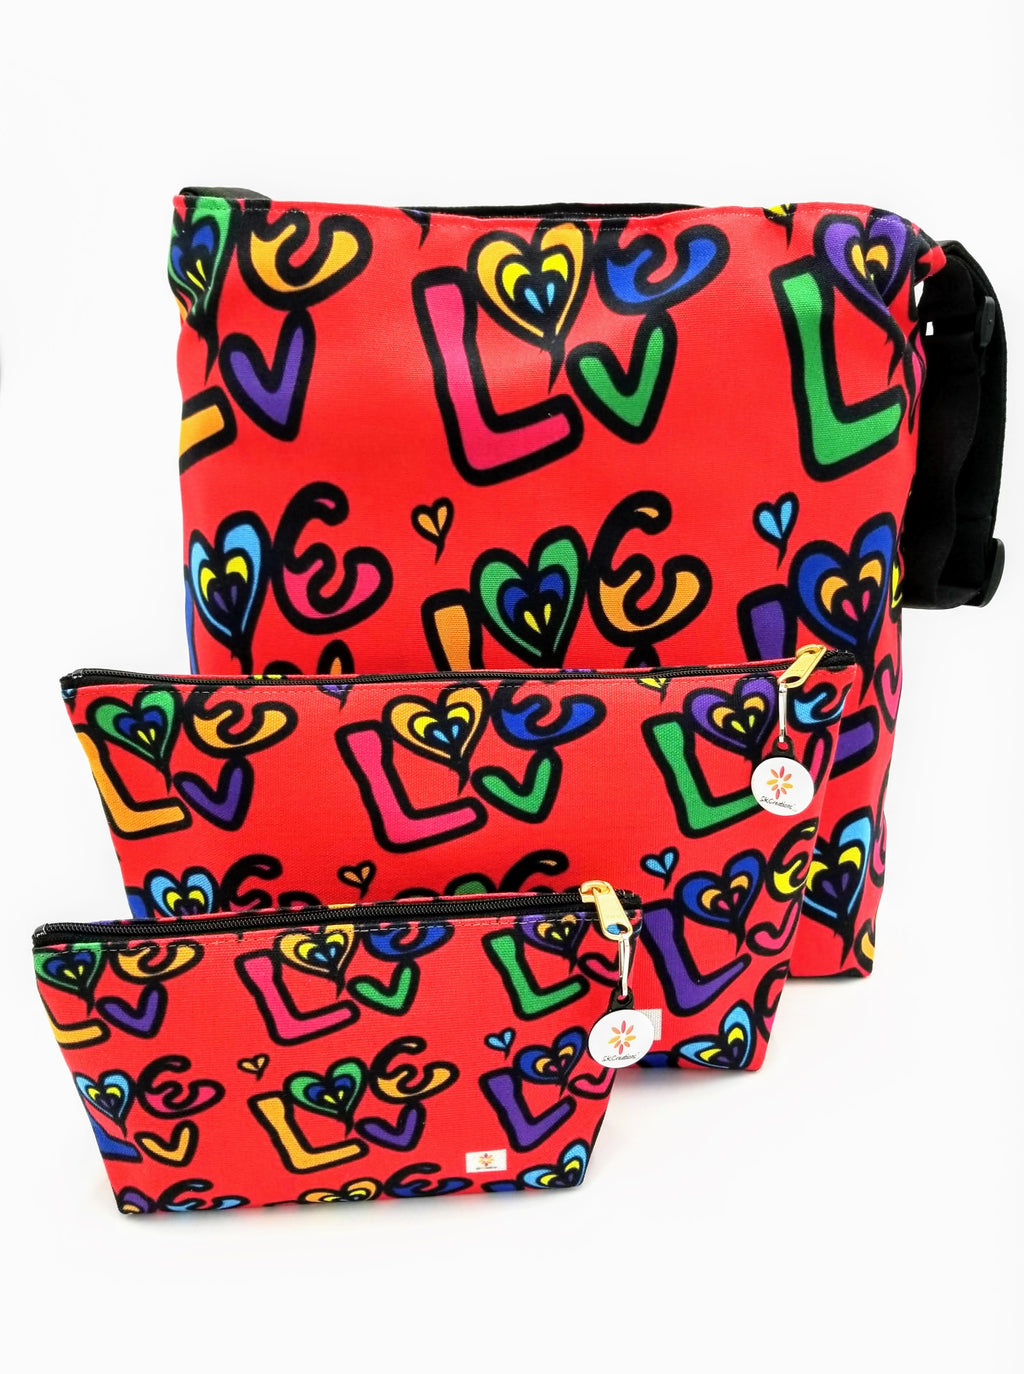 Love 2 © Crossbody Bag and Pouches Set